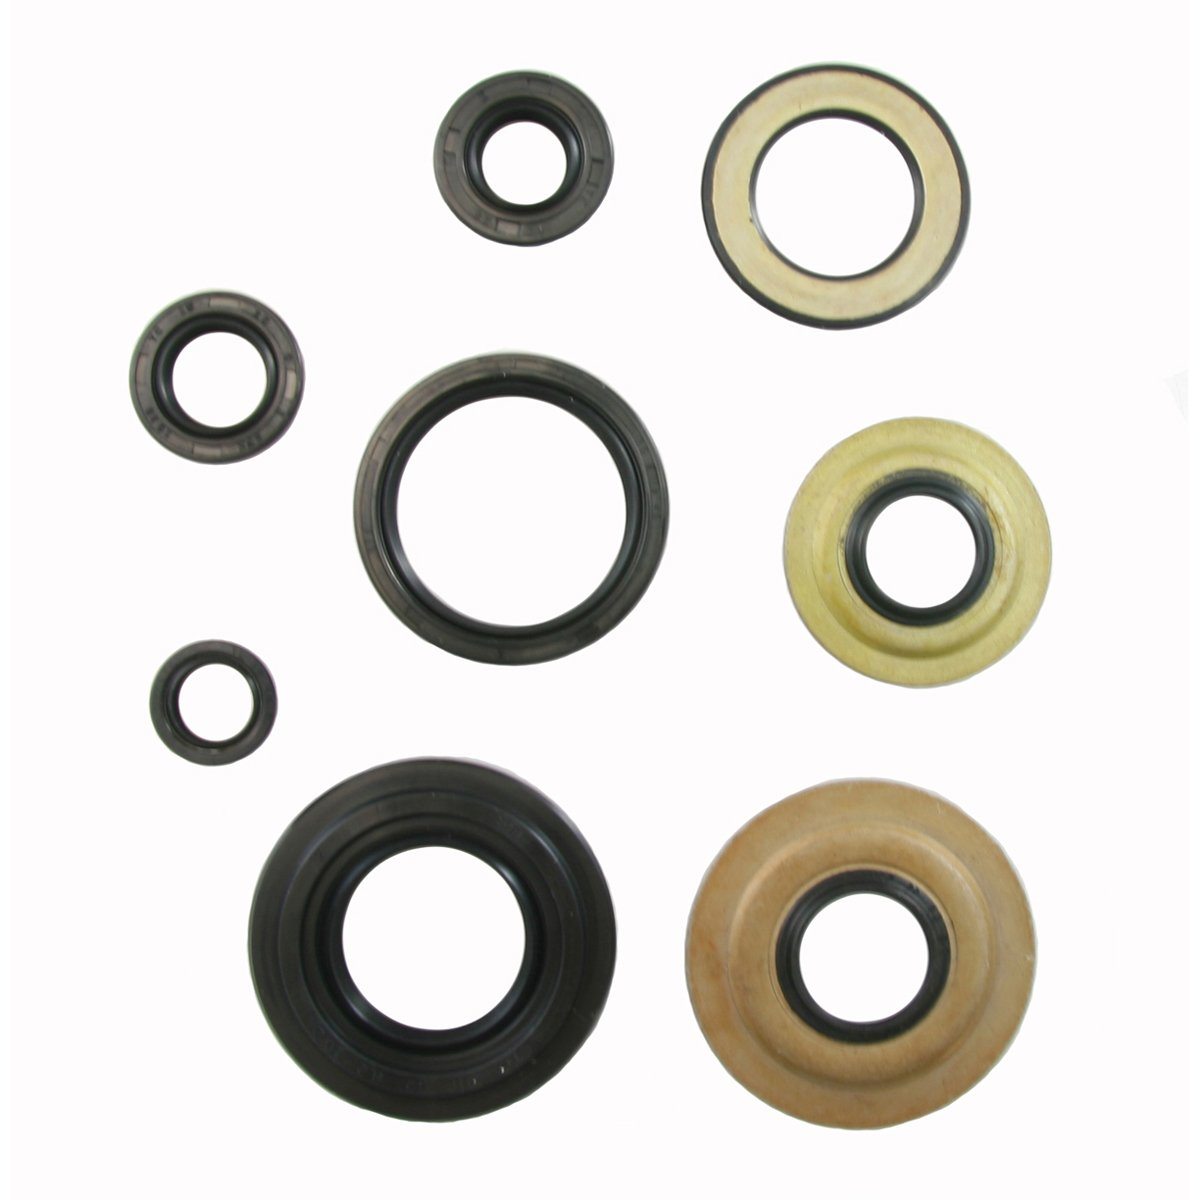 Tusk Engine Oil Seal Kit - Fits: Yamaha RAPTOR 350 2004-2013